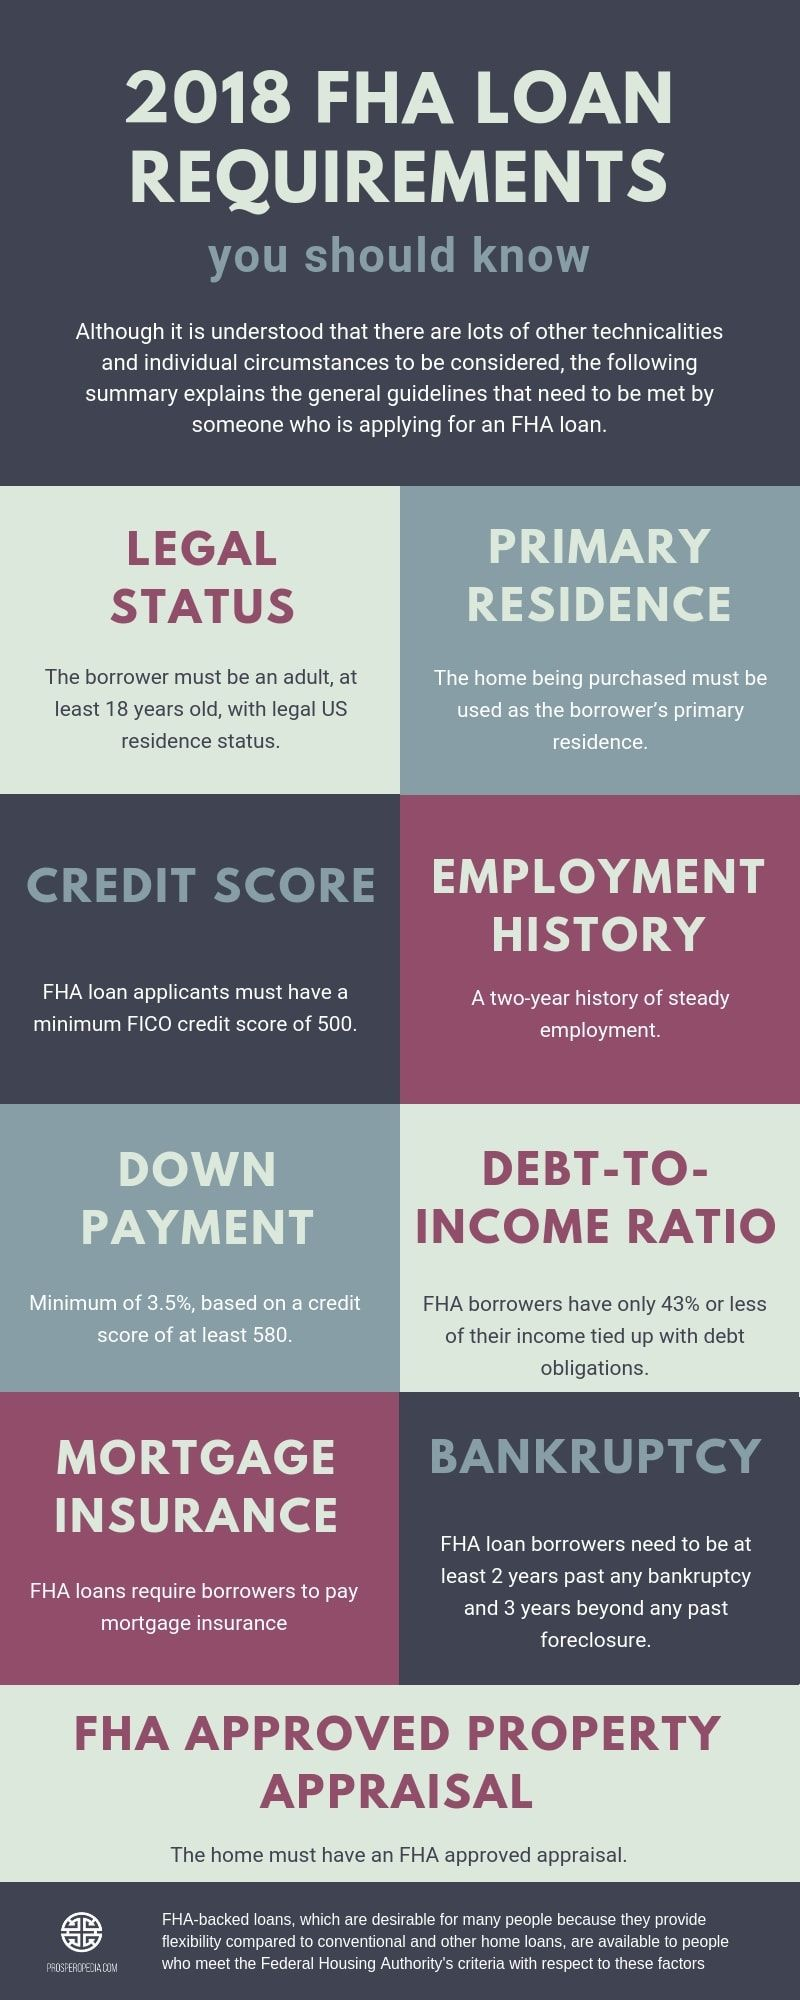 2018 Fha Loan Requirements Credit Score Down Payment Debt To